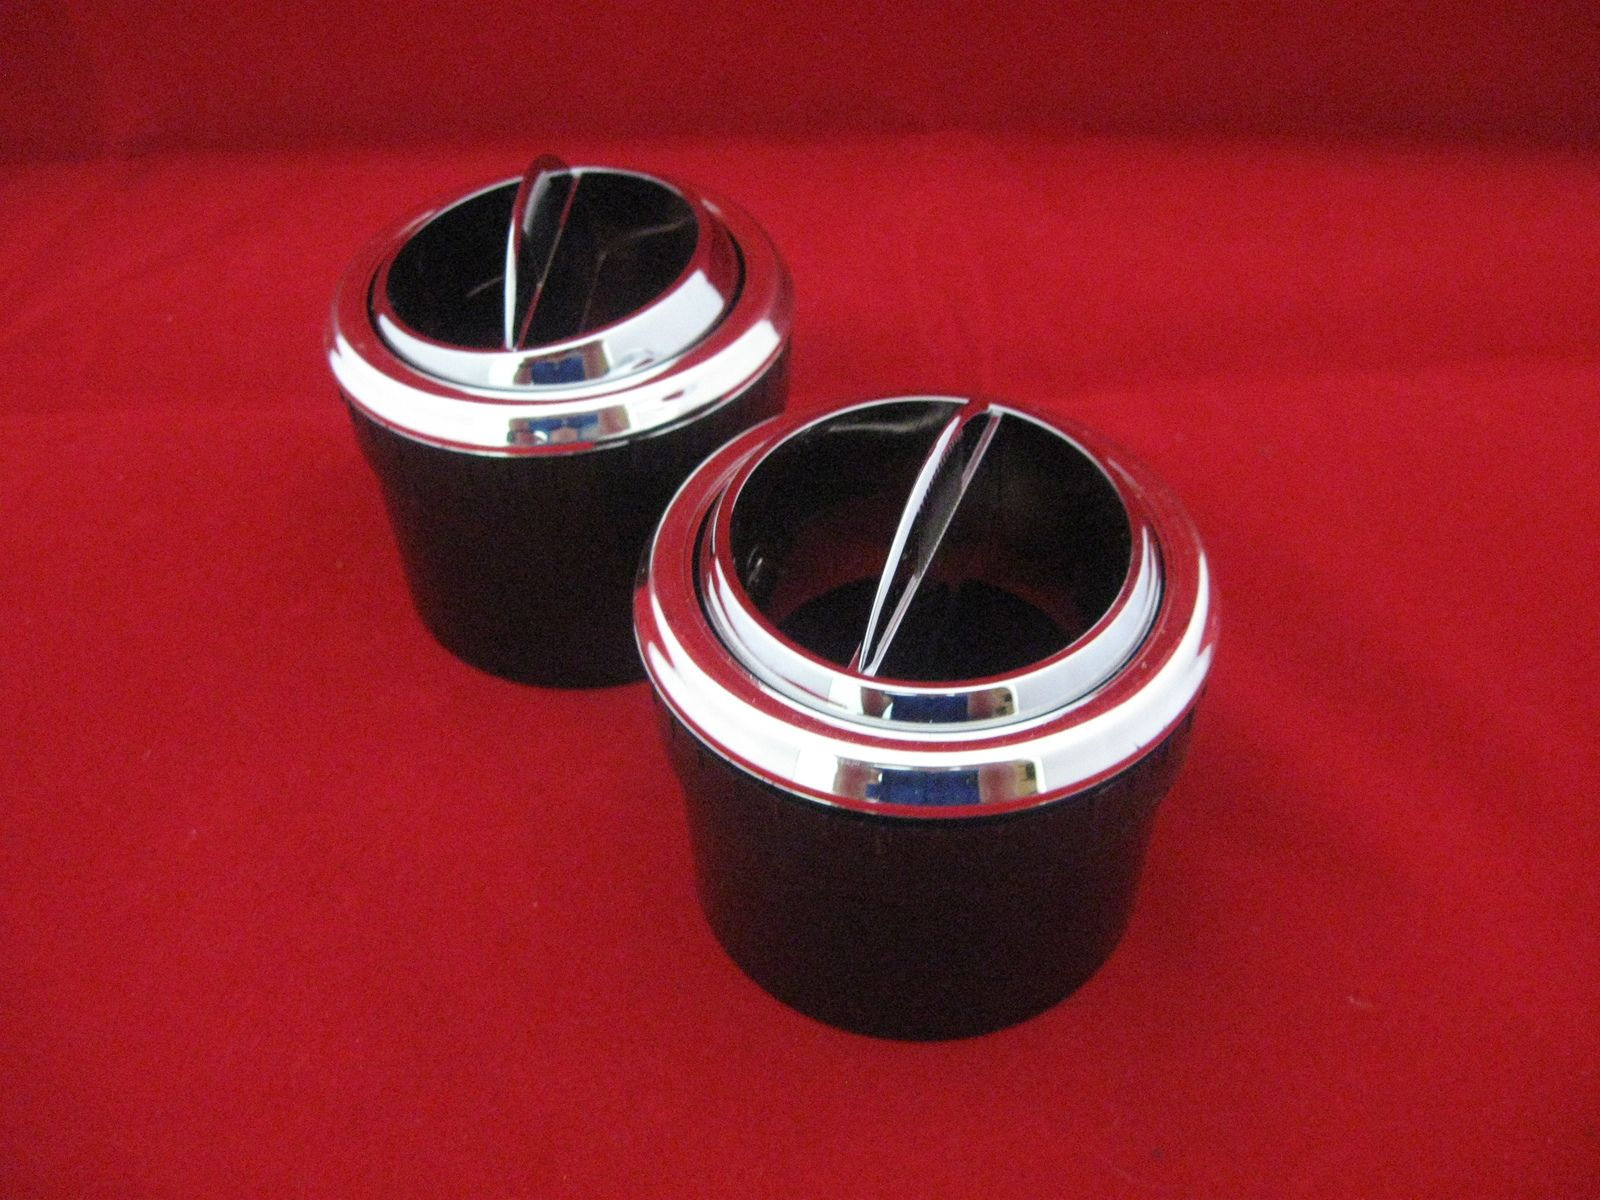 New Reproduction Round Single Vane Dashboard AC Vent Pair